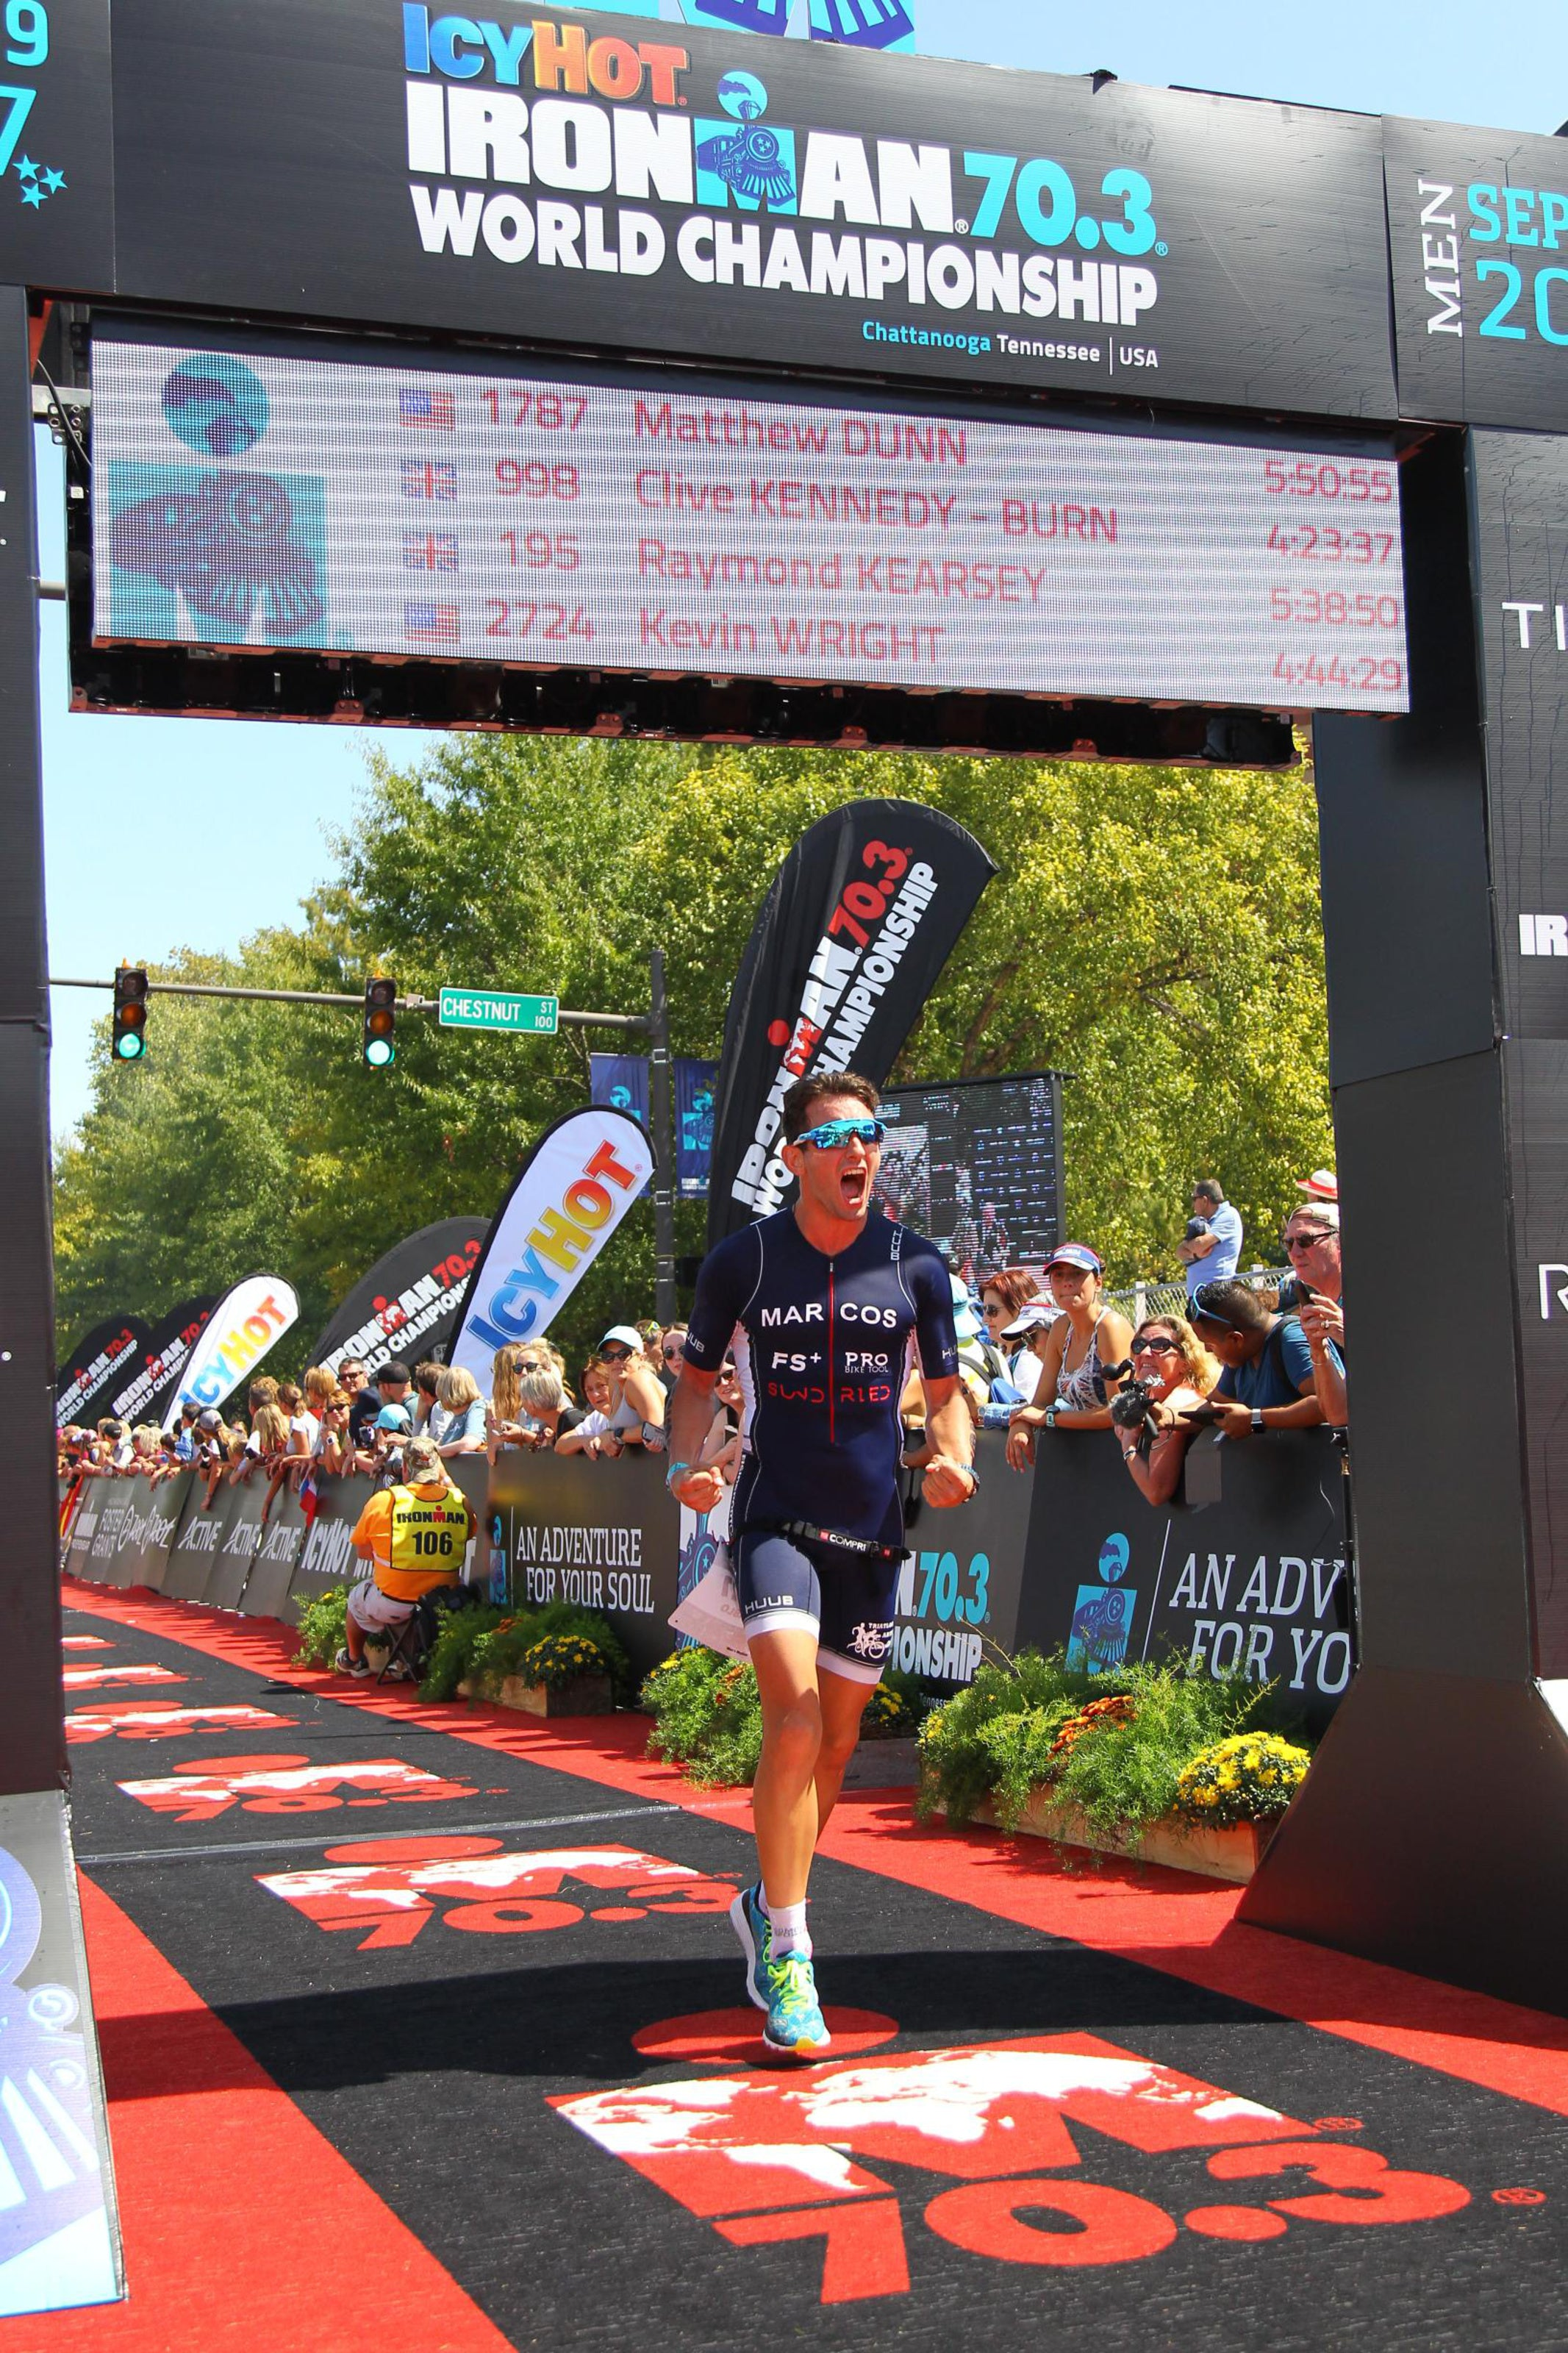 Ironman 70.3 World Championship Finish Line Racing